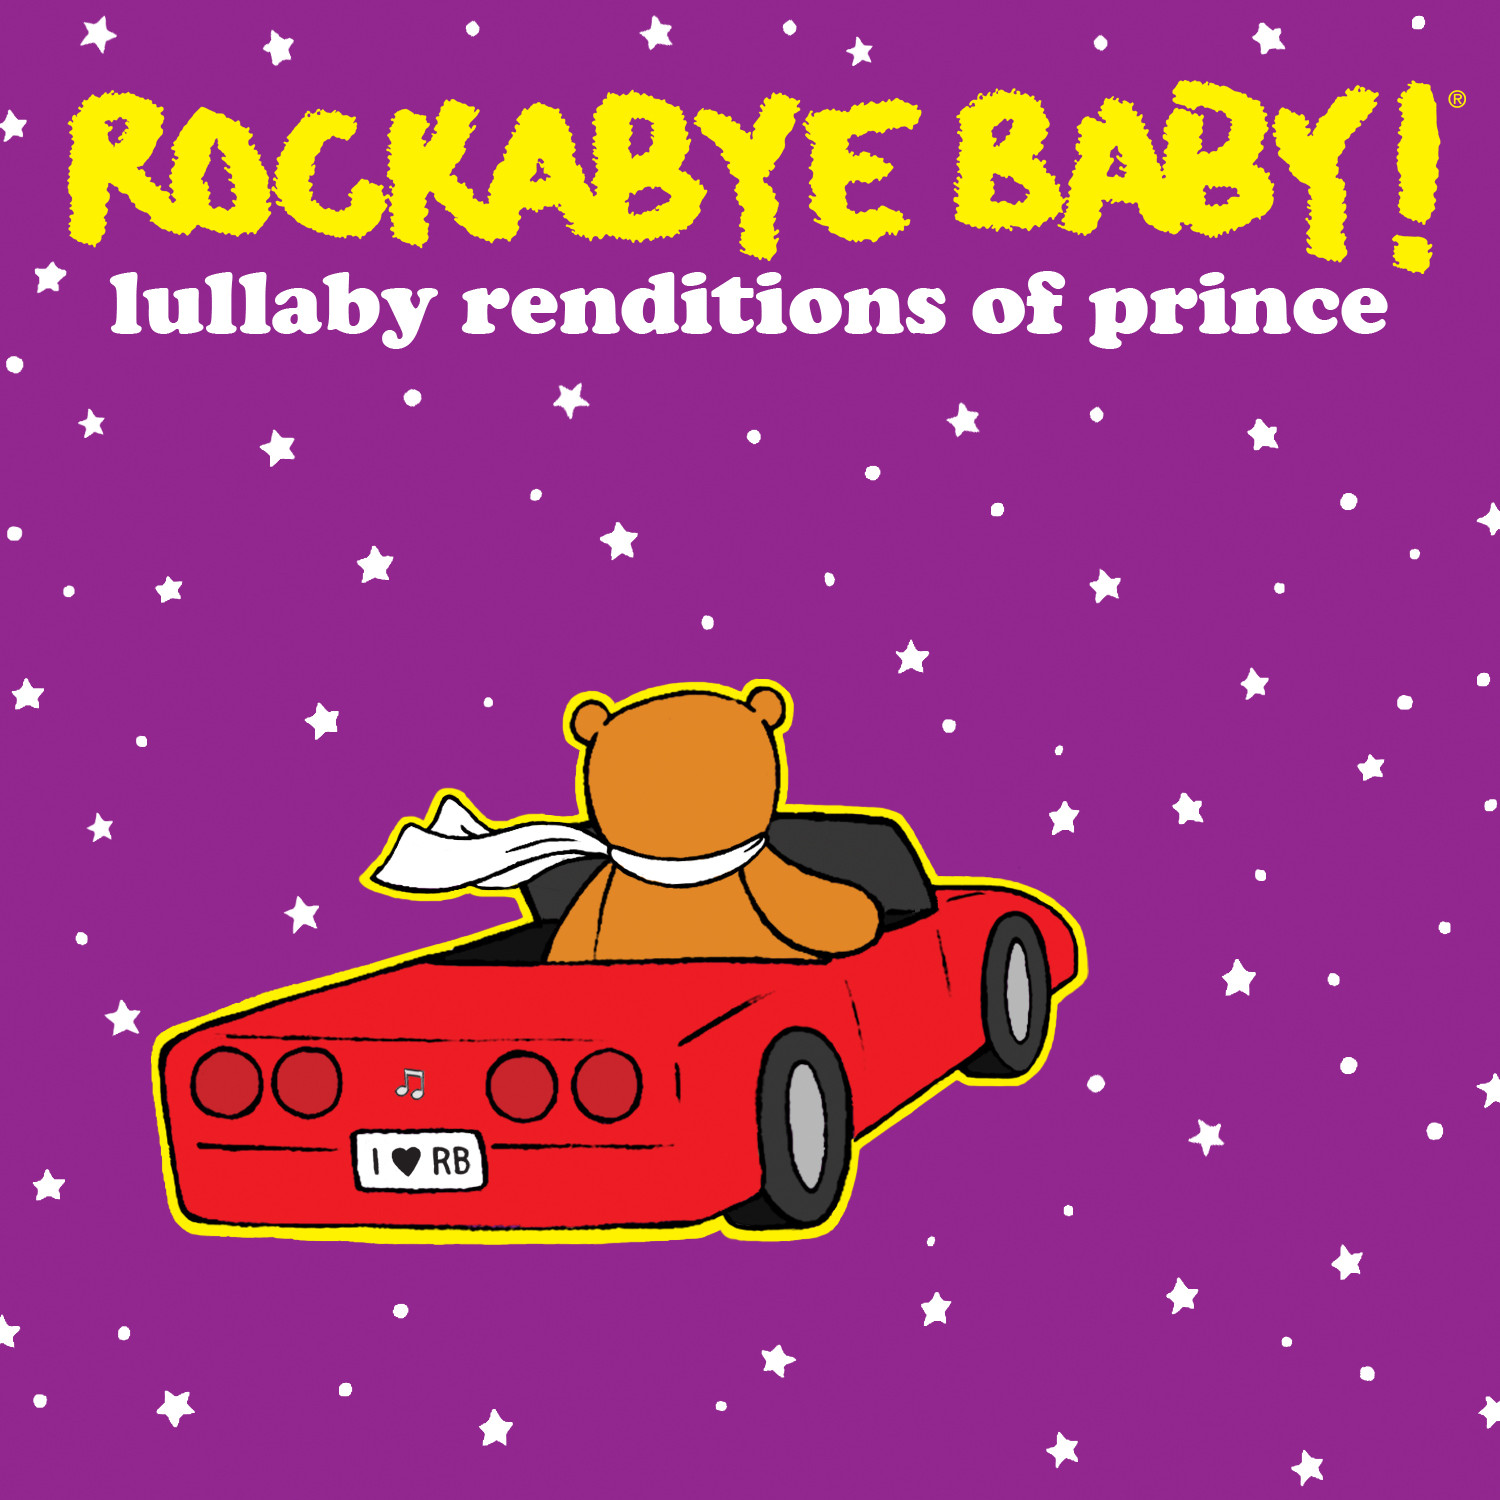 Rockabyebaby CD Prince Lullaby Baby CD